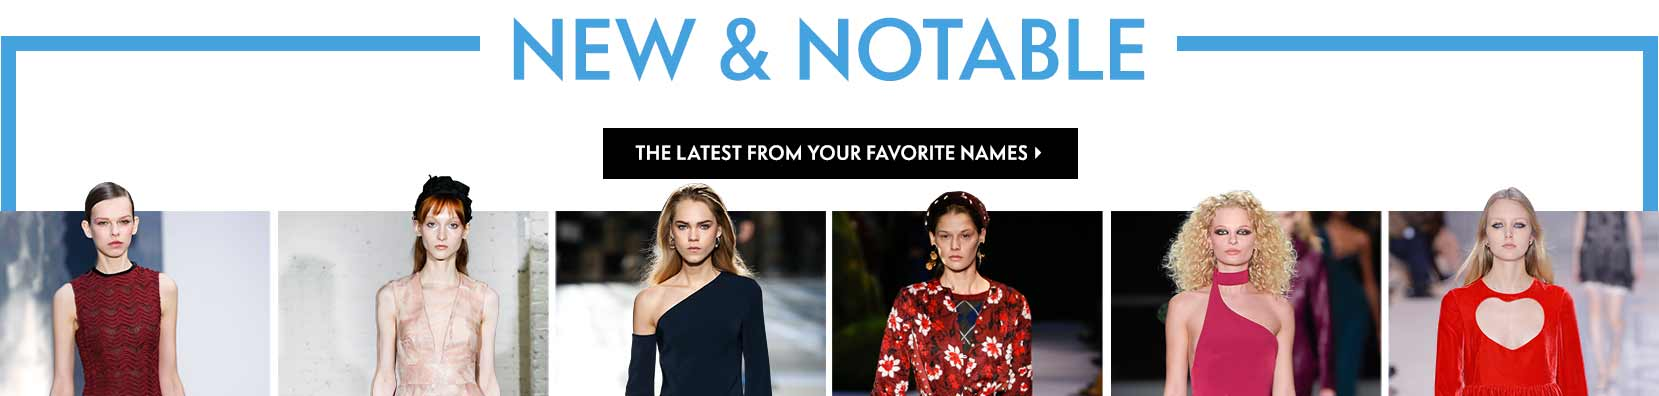 New & Notable Must-haves for the coming season & beyond The latest from your favorite names like Carolina Herrera, Lela Rose, Cushnie Et Ochs, Altuzarra, Brandon Maxwell, Chloe, Calvin Klein 205w39nyc and more